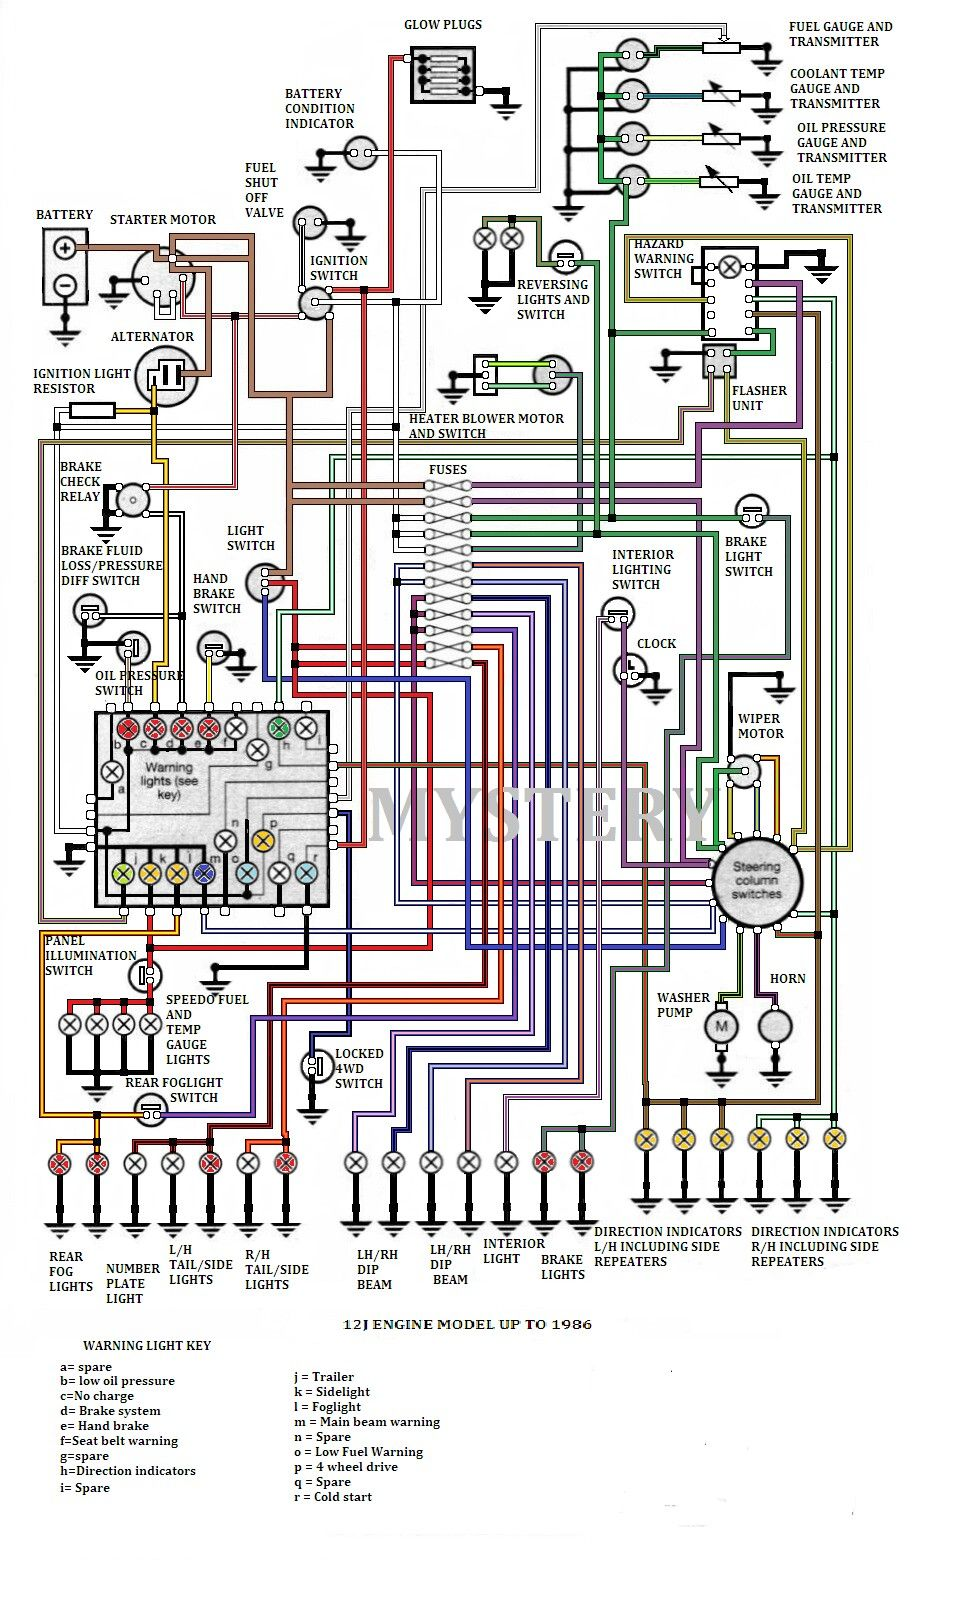 land rover defender wiring diagram [ 960 x 1604 Pixel ]